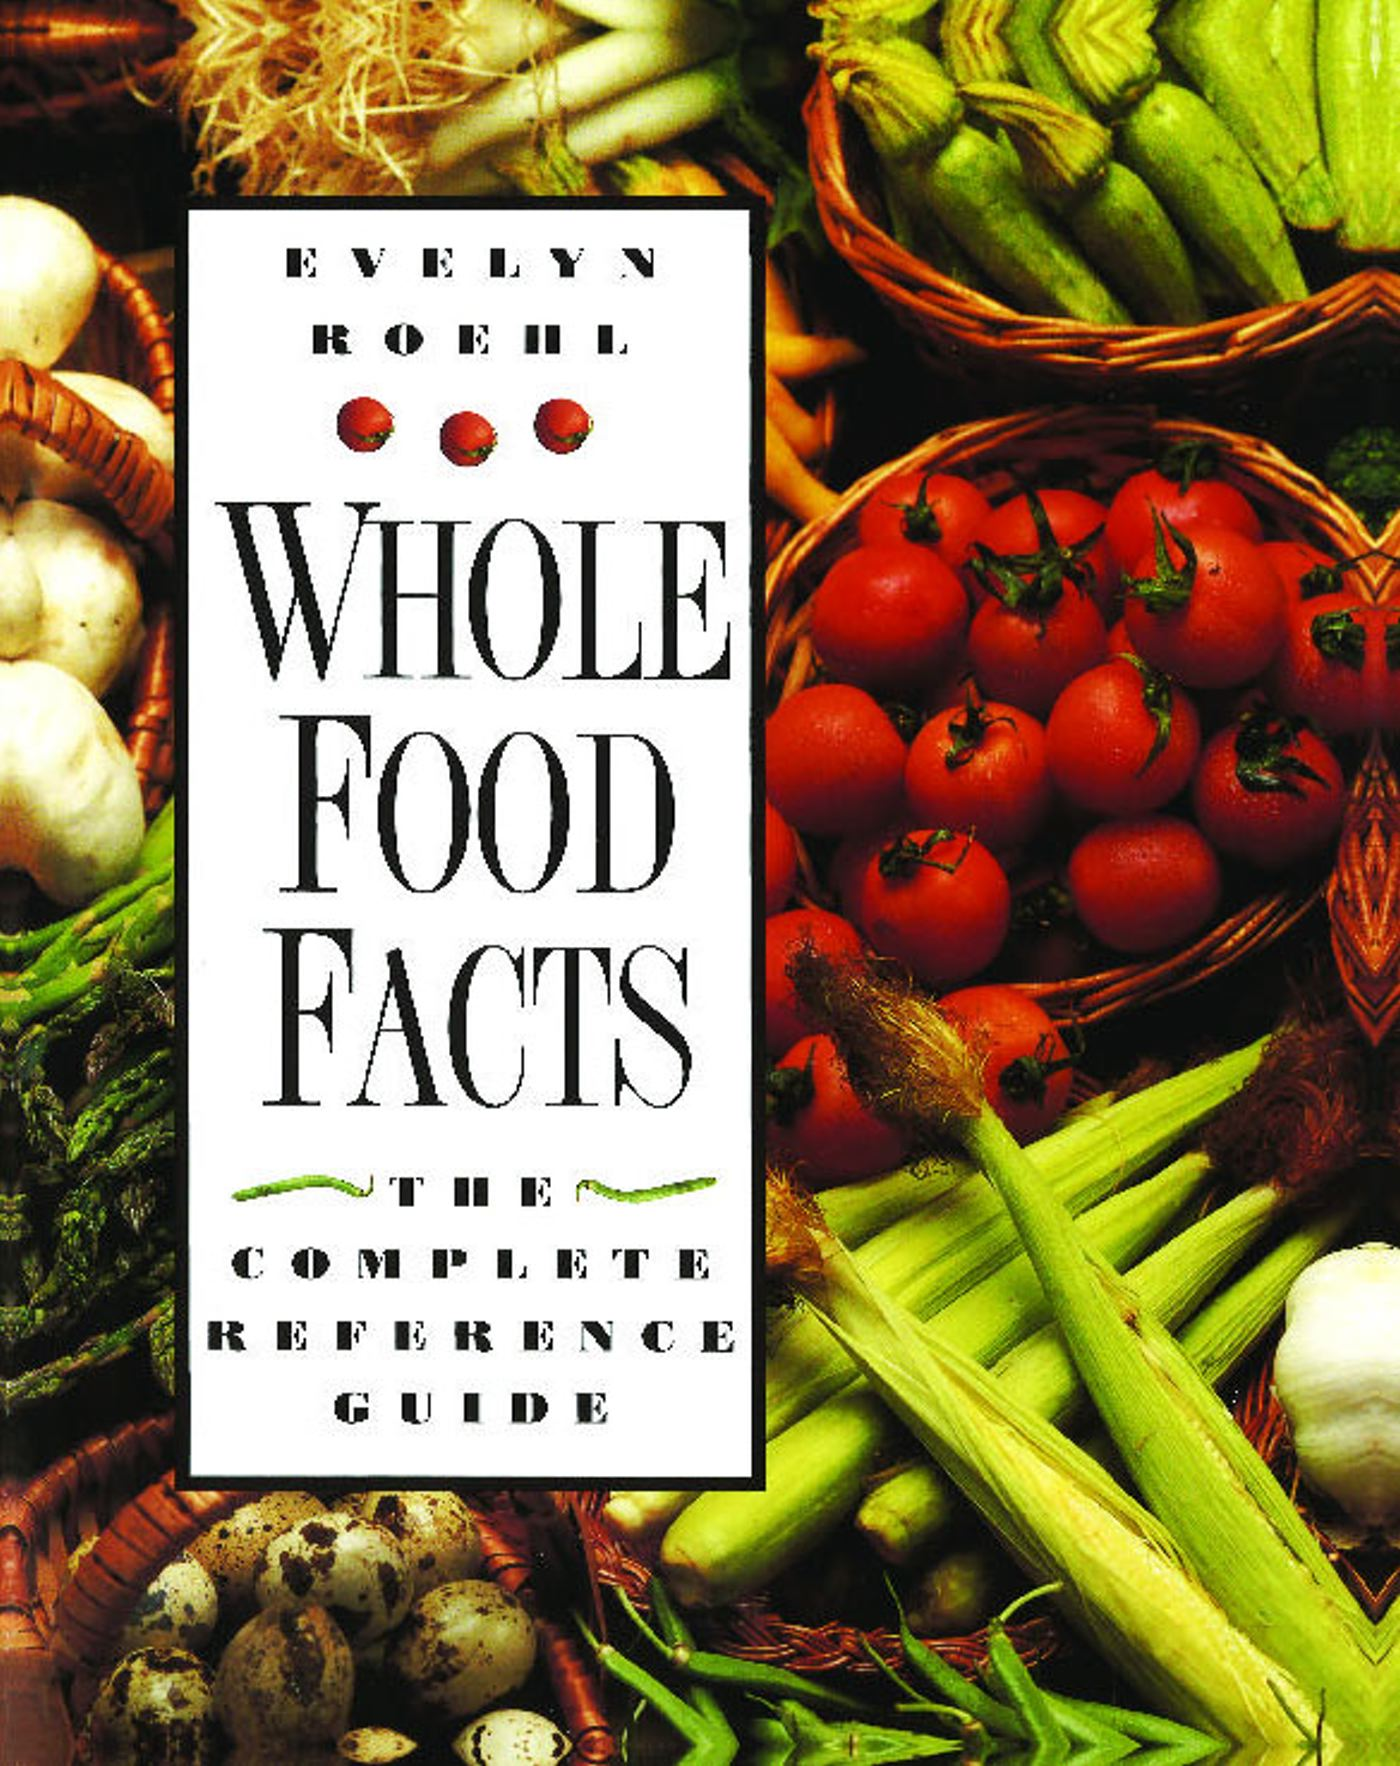 Whole-food-facts-9780892816354_hr